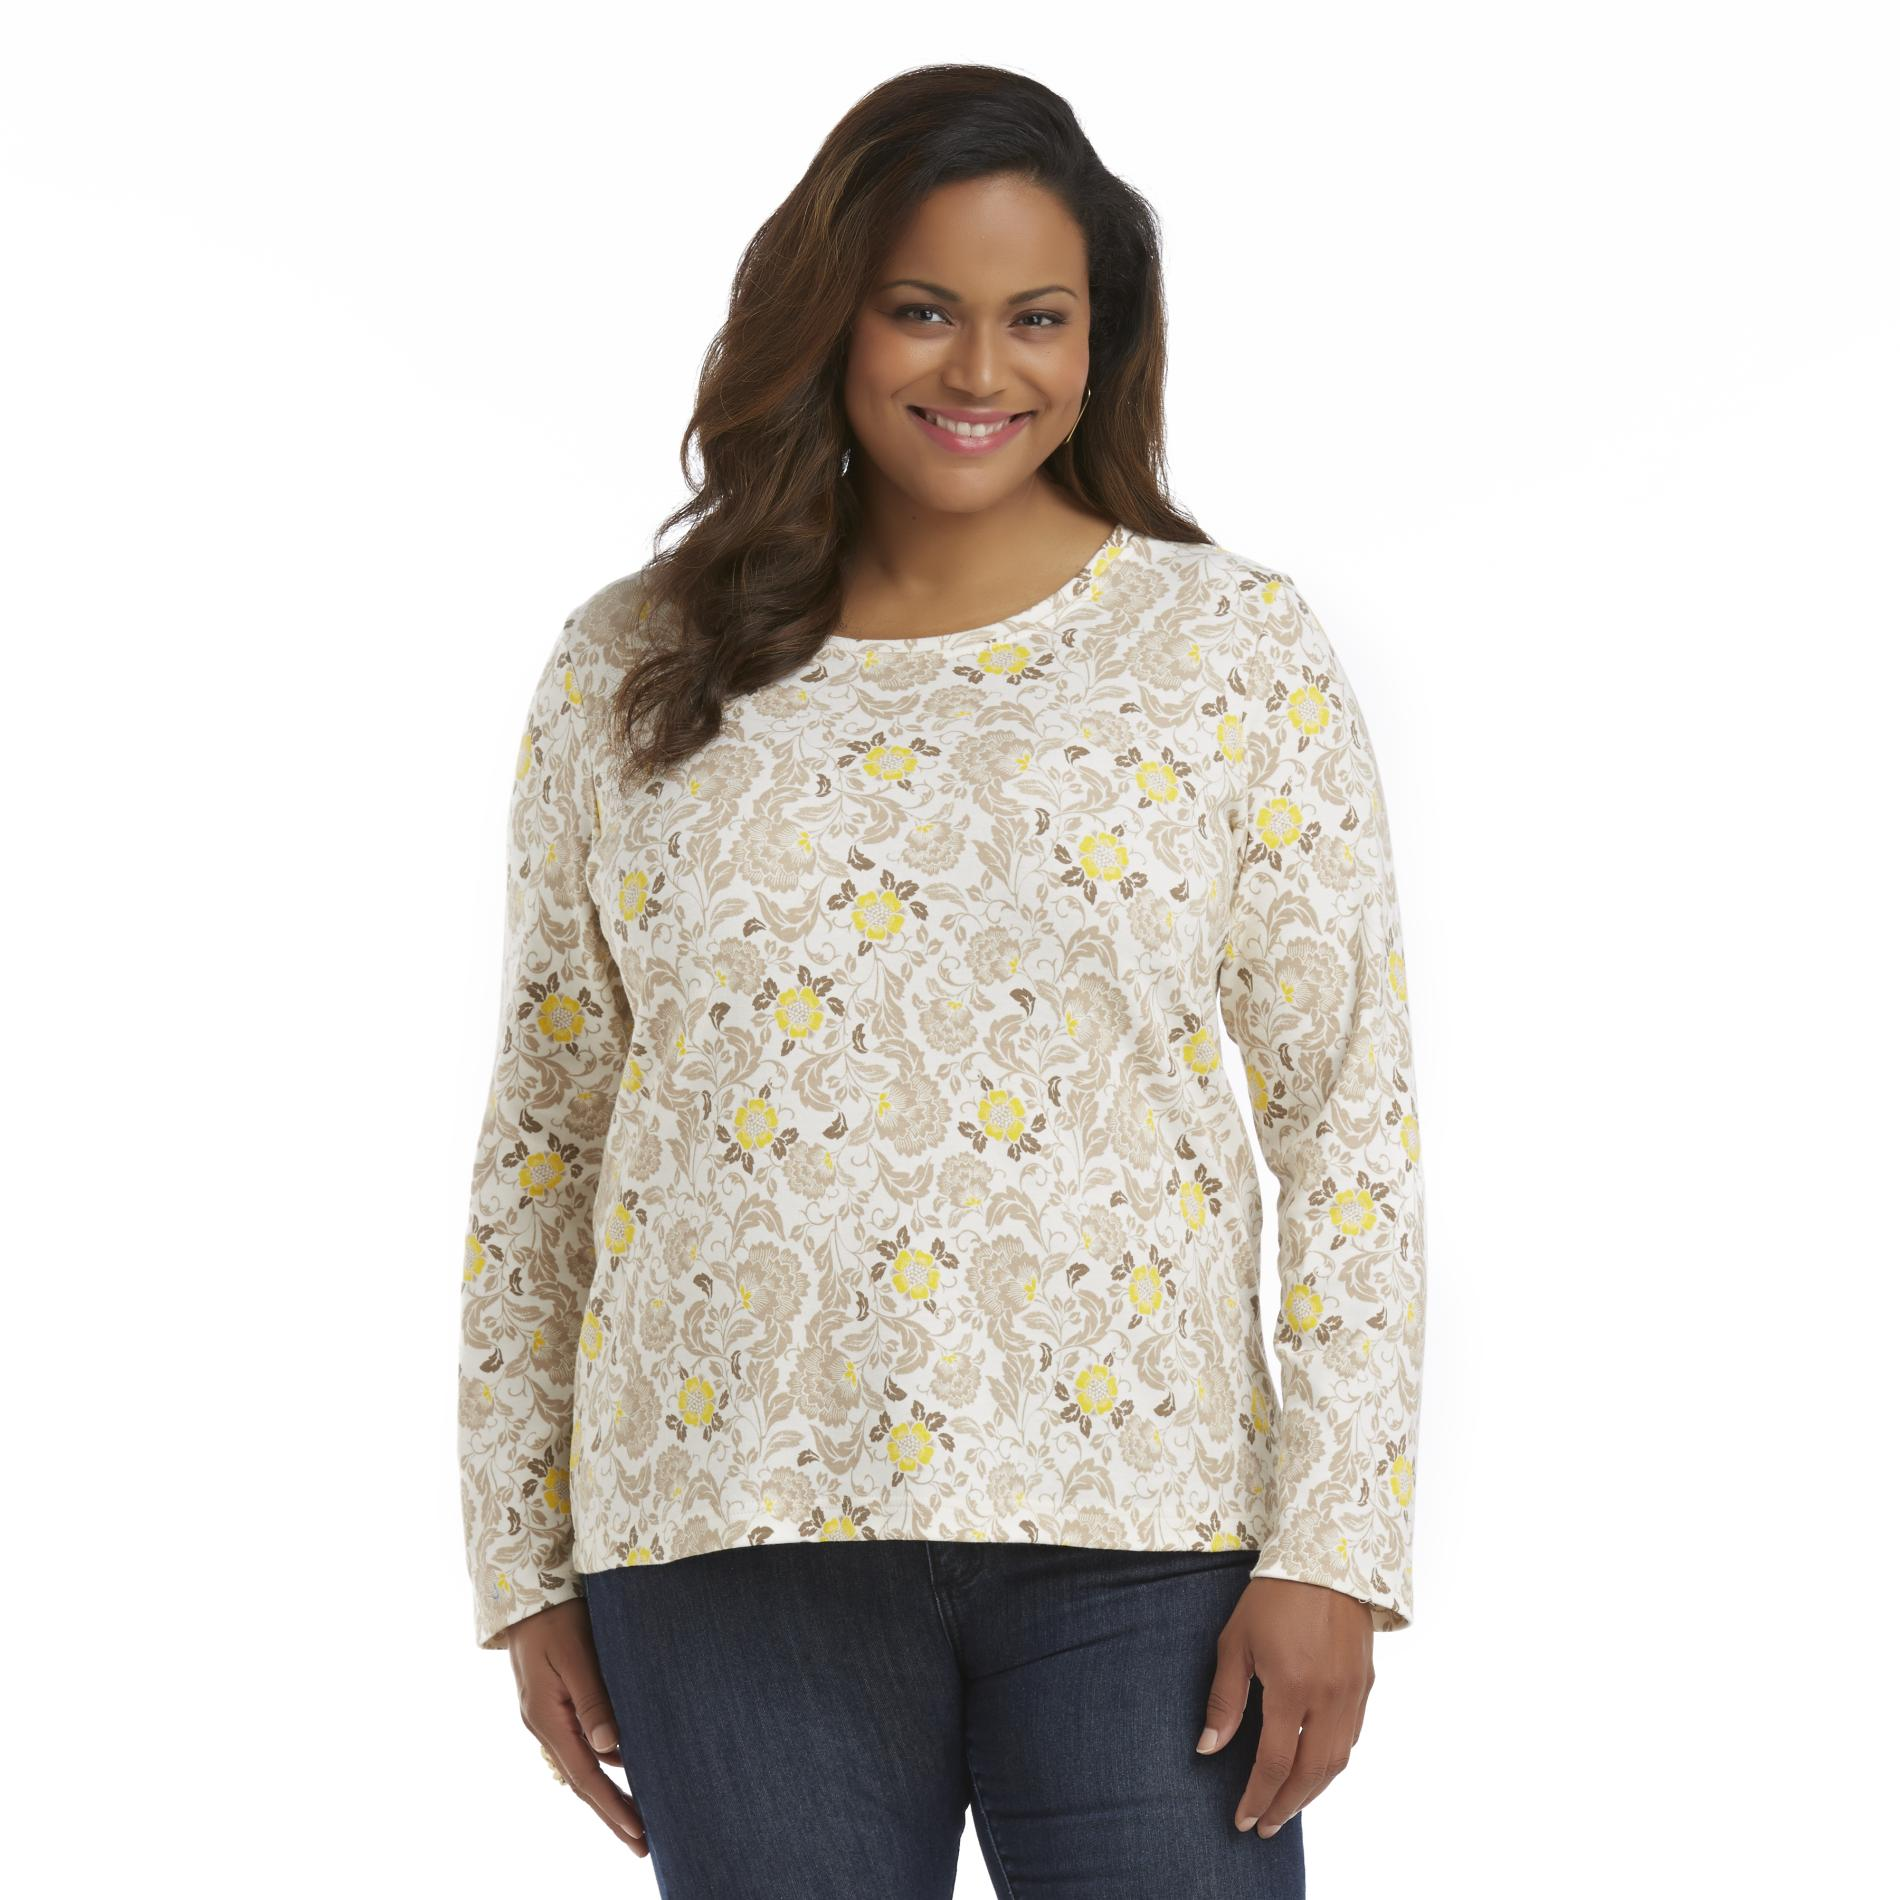 Basic Editions Women's Plus Long-Sleeve Shirt - Floral at Kmart.com